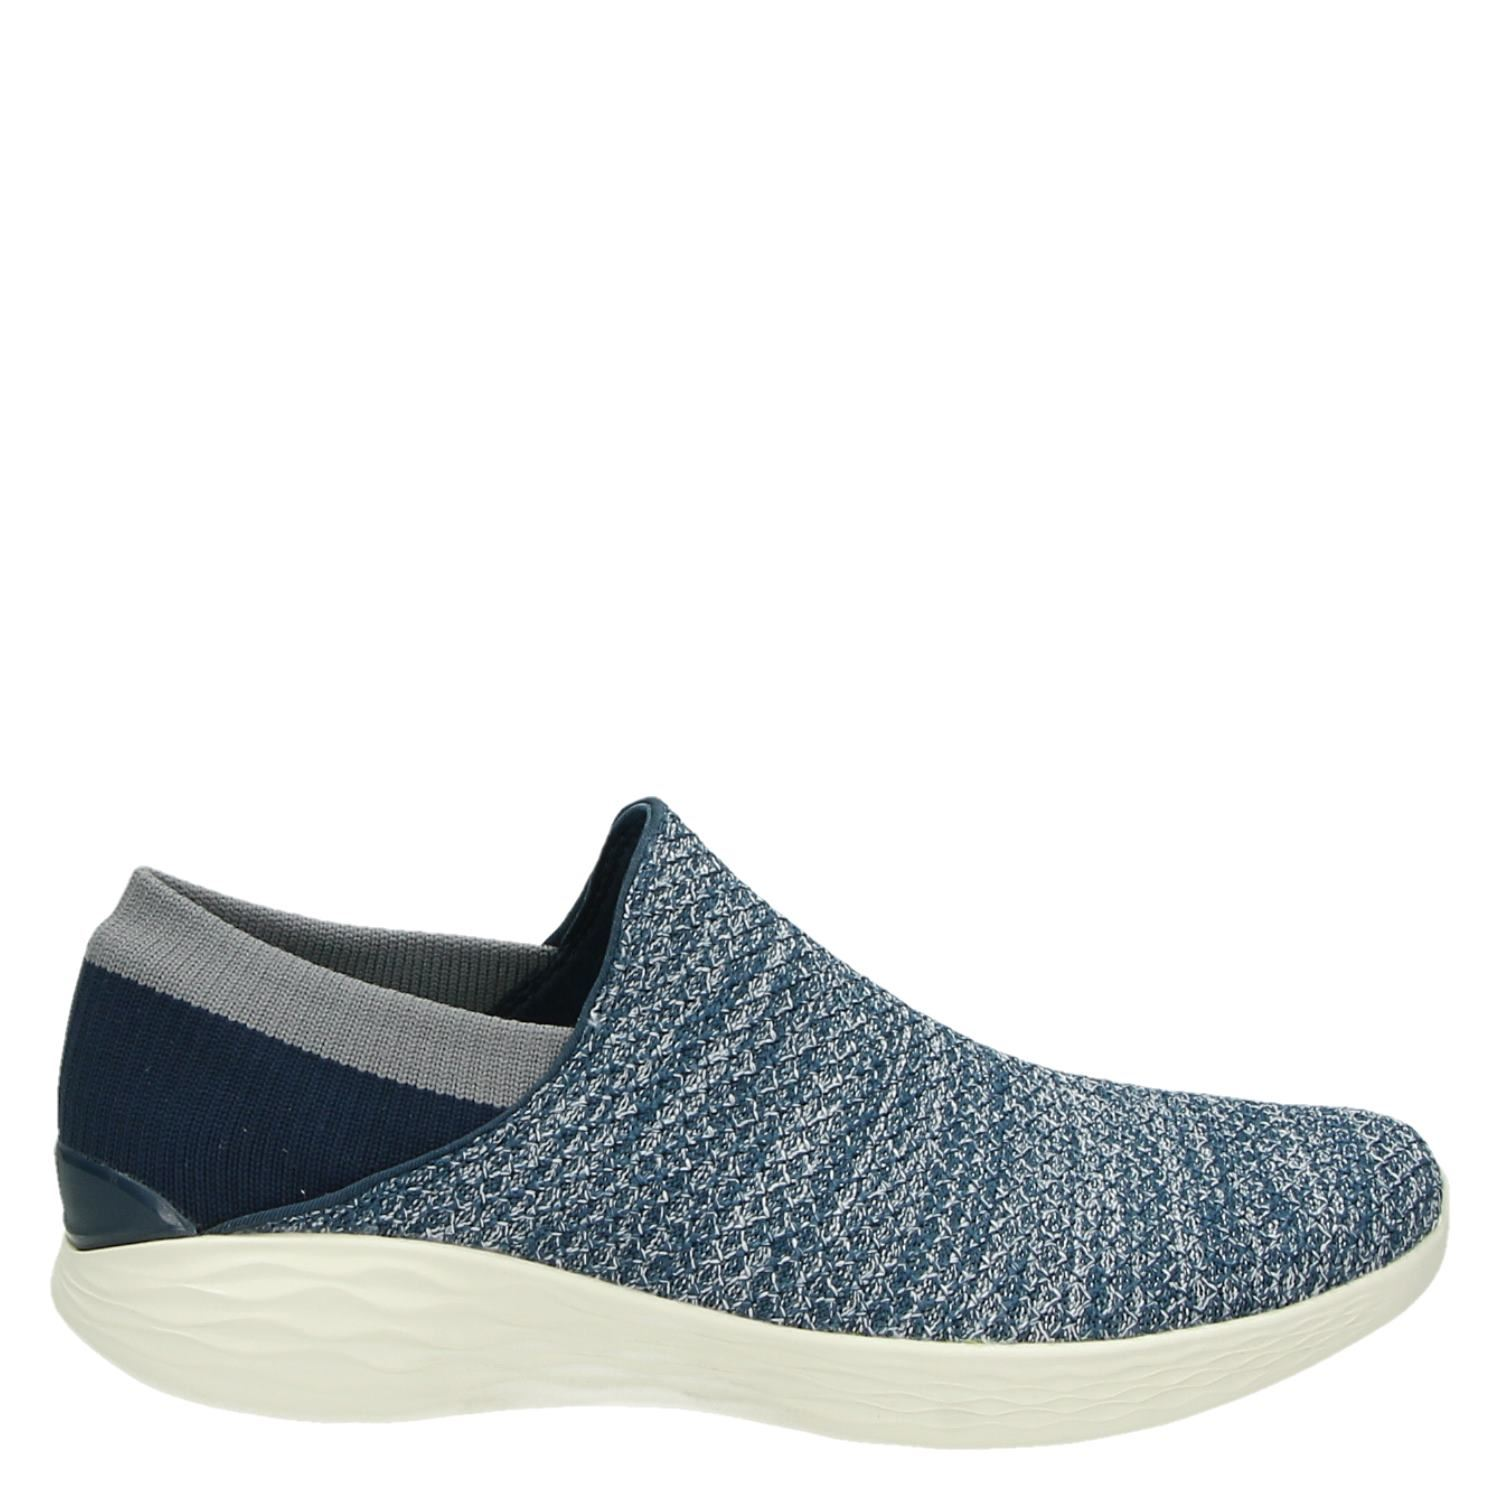 Skechers Dames Skechers You Dames Instapschoenen Blauw